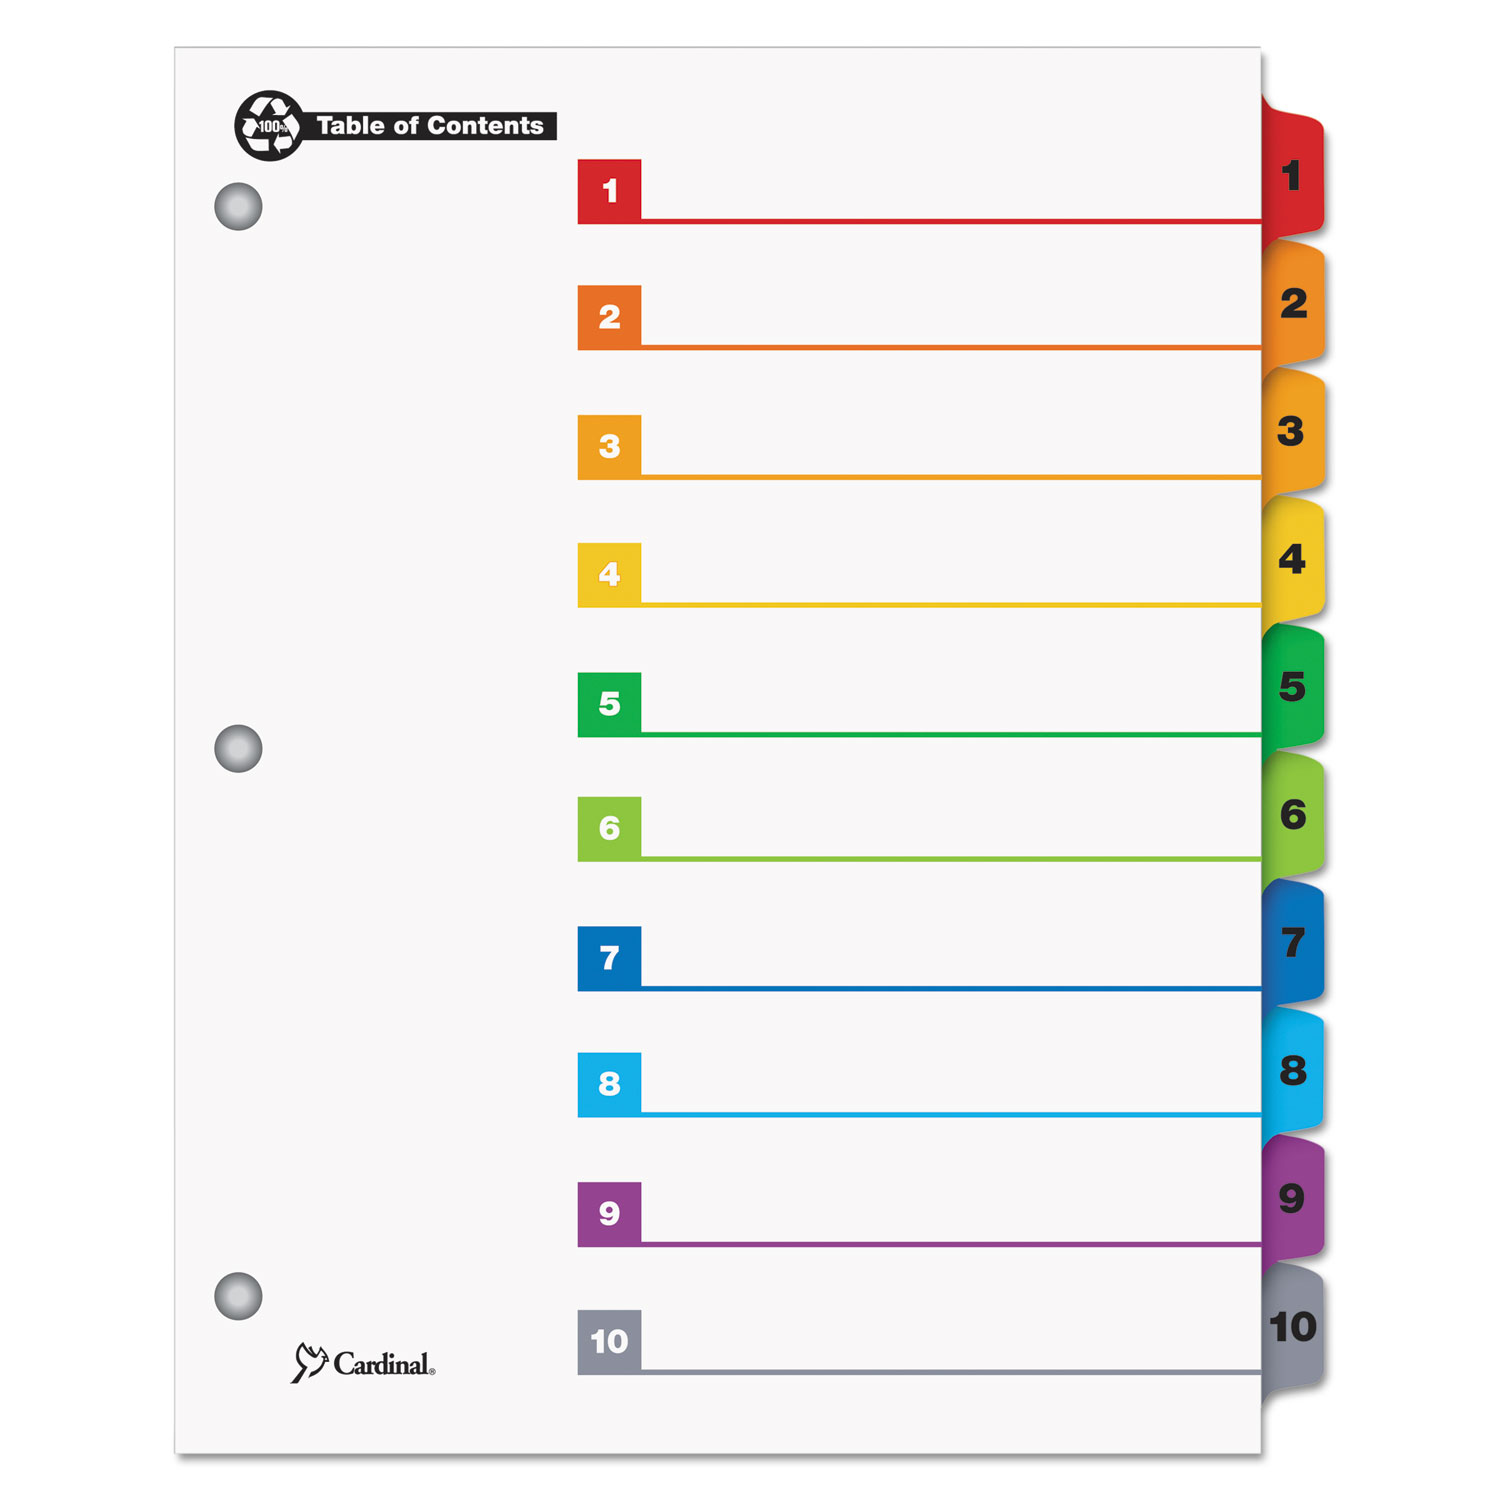 image about Printable Dividers known as Cardinal Onestep Printable Desk Of Contents Dividers - 10 X Divider - Revealed1 - 10 - 10 Tab[s]/mounted - 9\